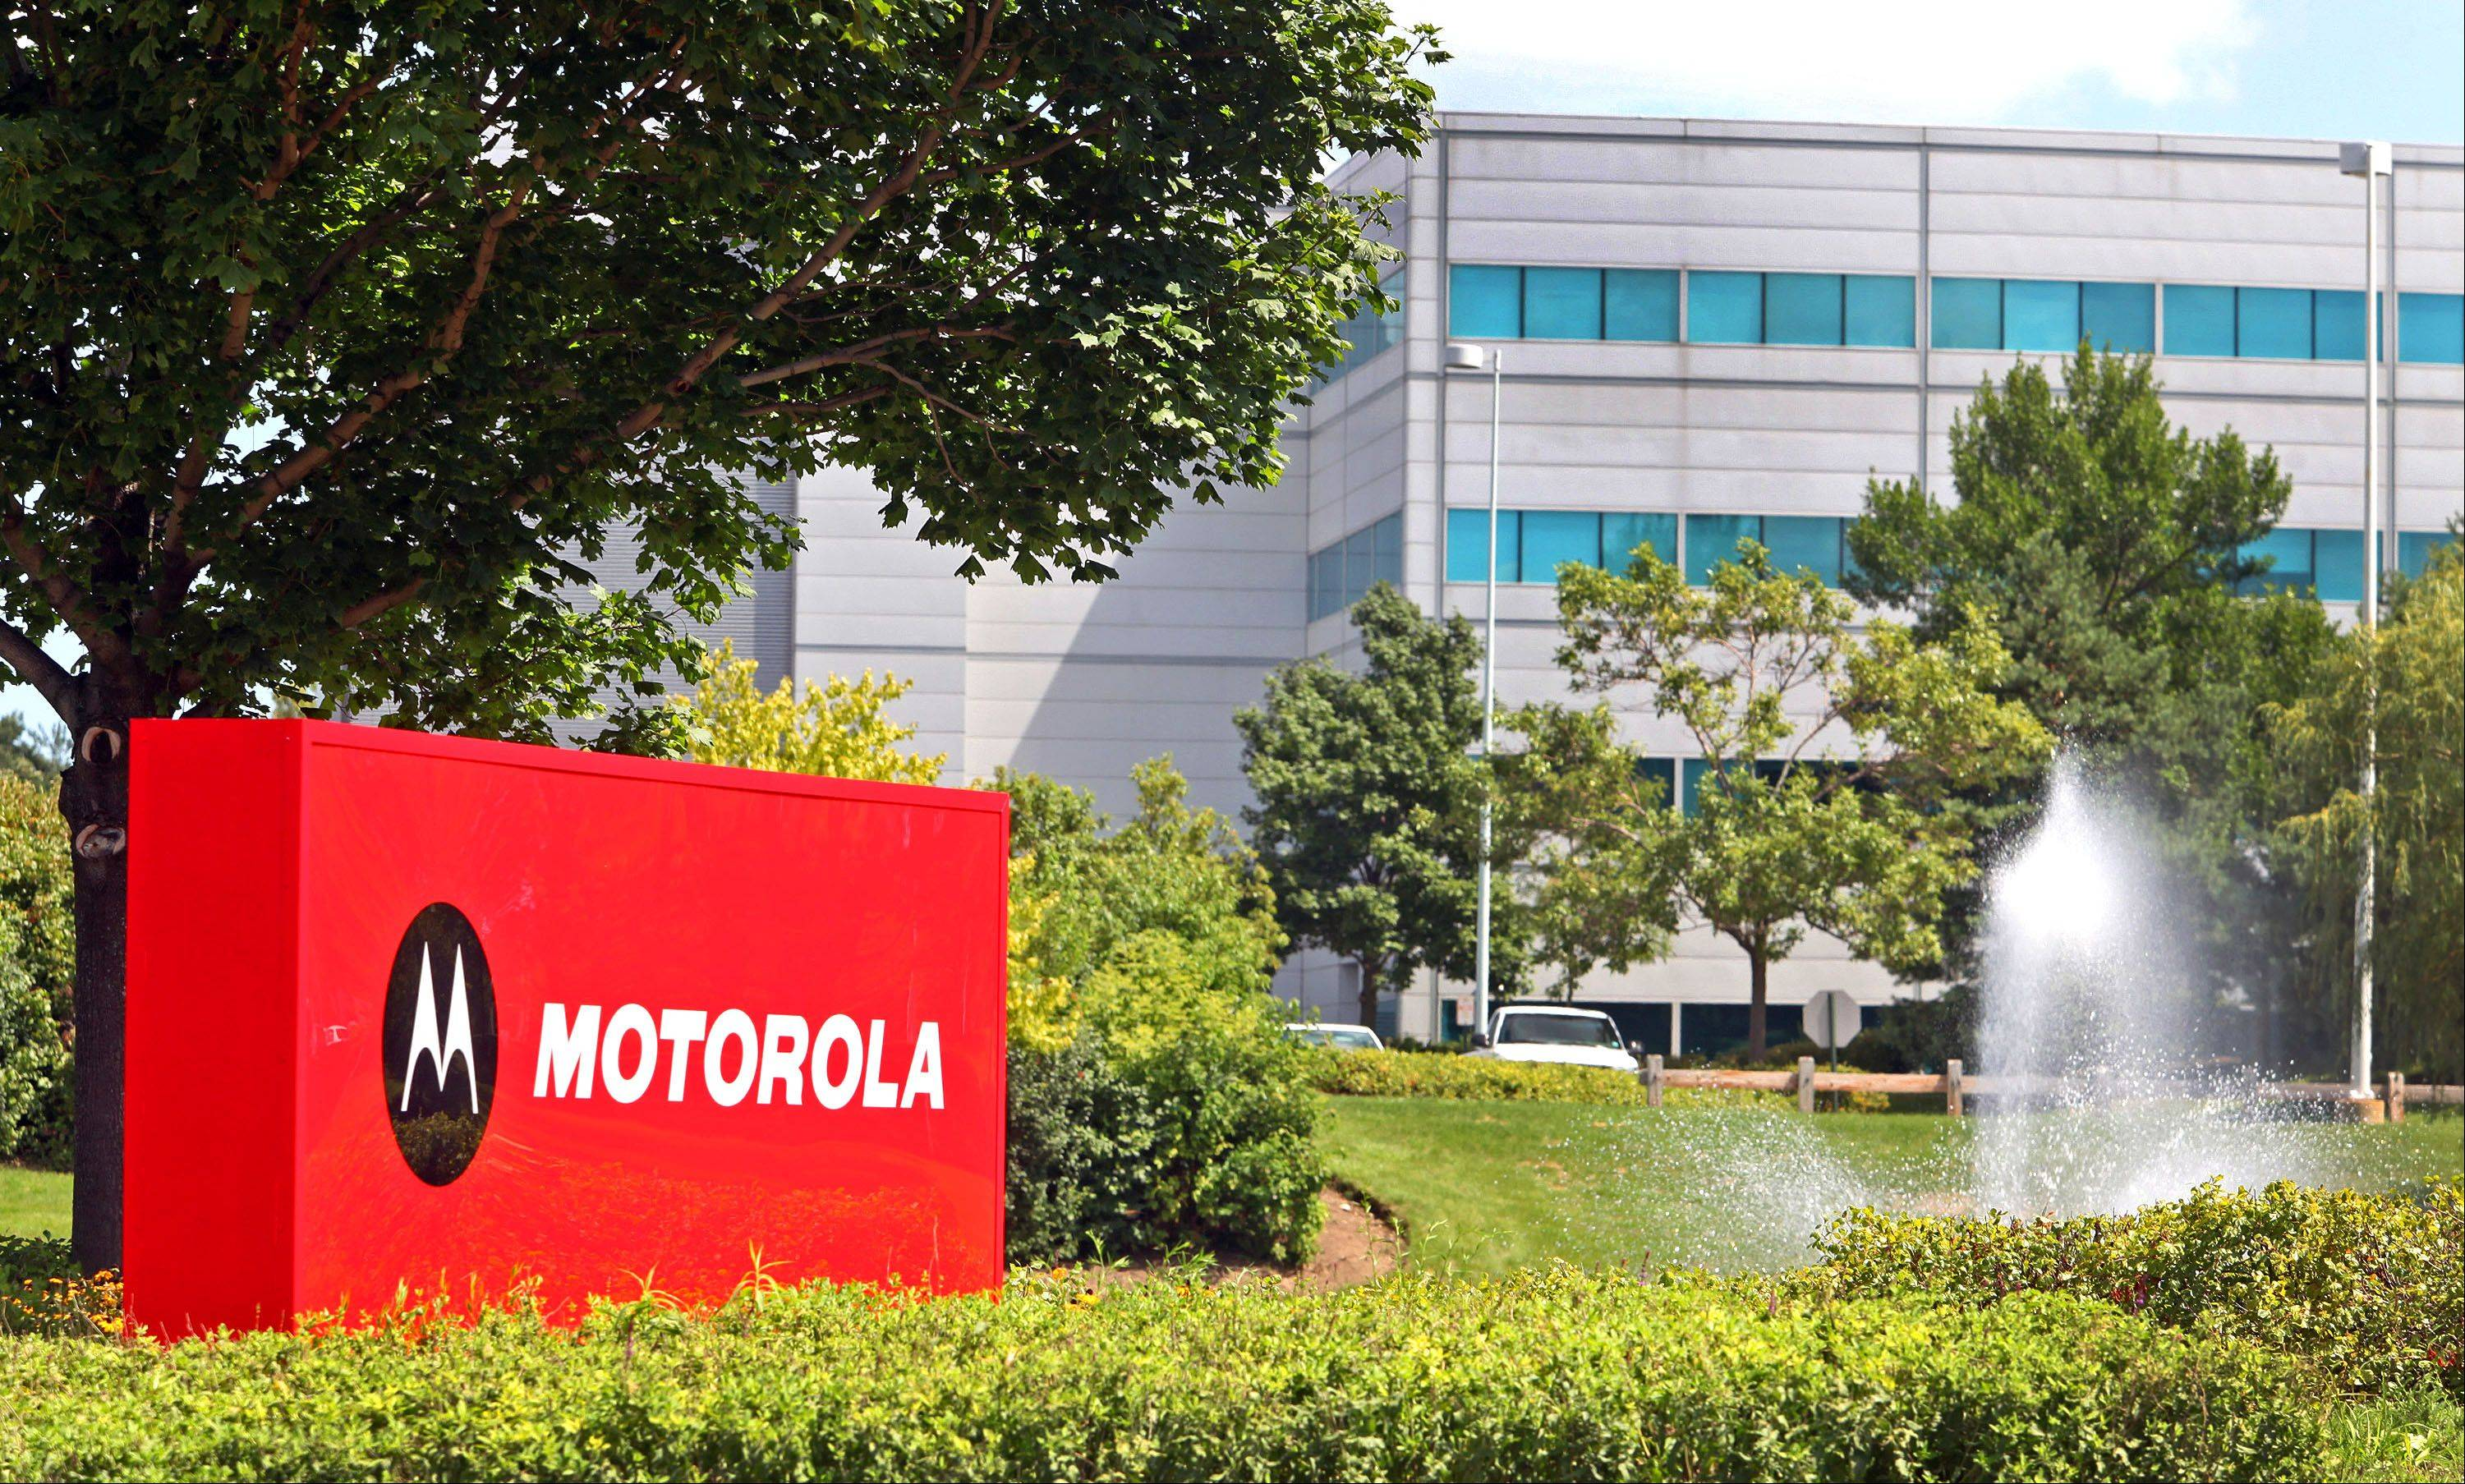 Google Inc. wants to sell Motorola Mobility's headquarters off Route 45 in Libertyville. Motorola Mobility plans to move its entire workforce from Libertyville to the Merchandise Mart in downtown Chicago by late this year.